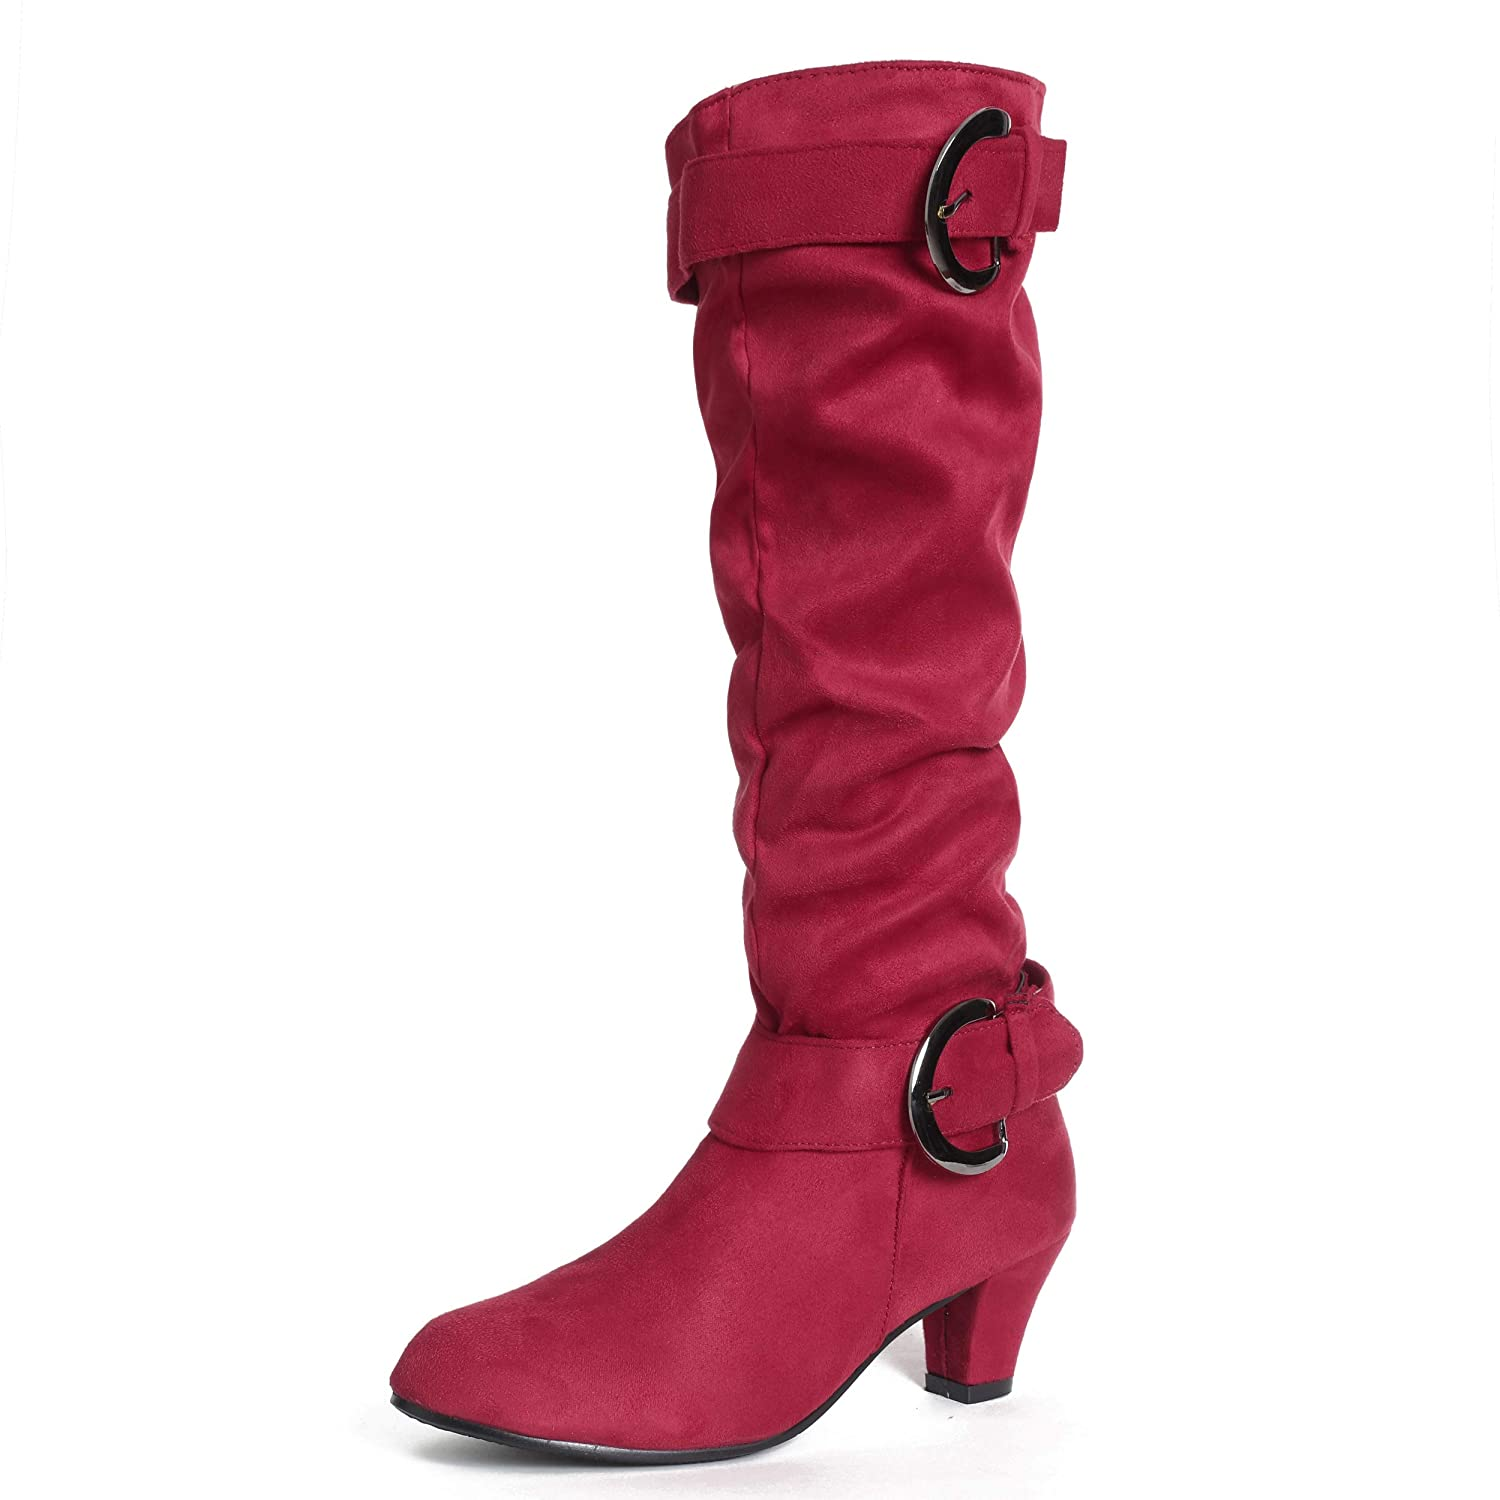 Susanny Suede Riding Boots for Women Slouchy Knee High Buckle Strappy Zipper Botas Kitten Heels Shoes